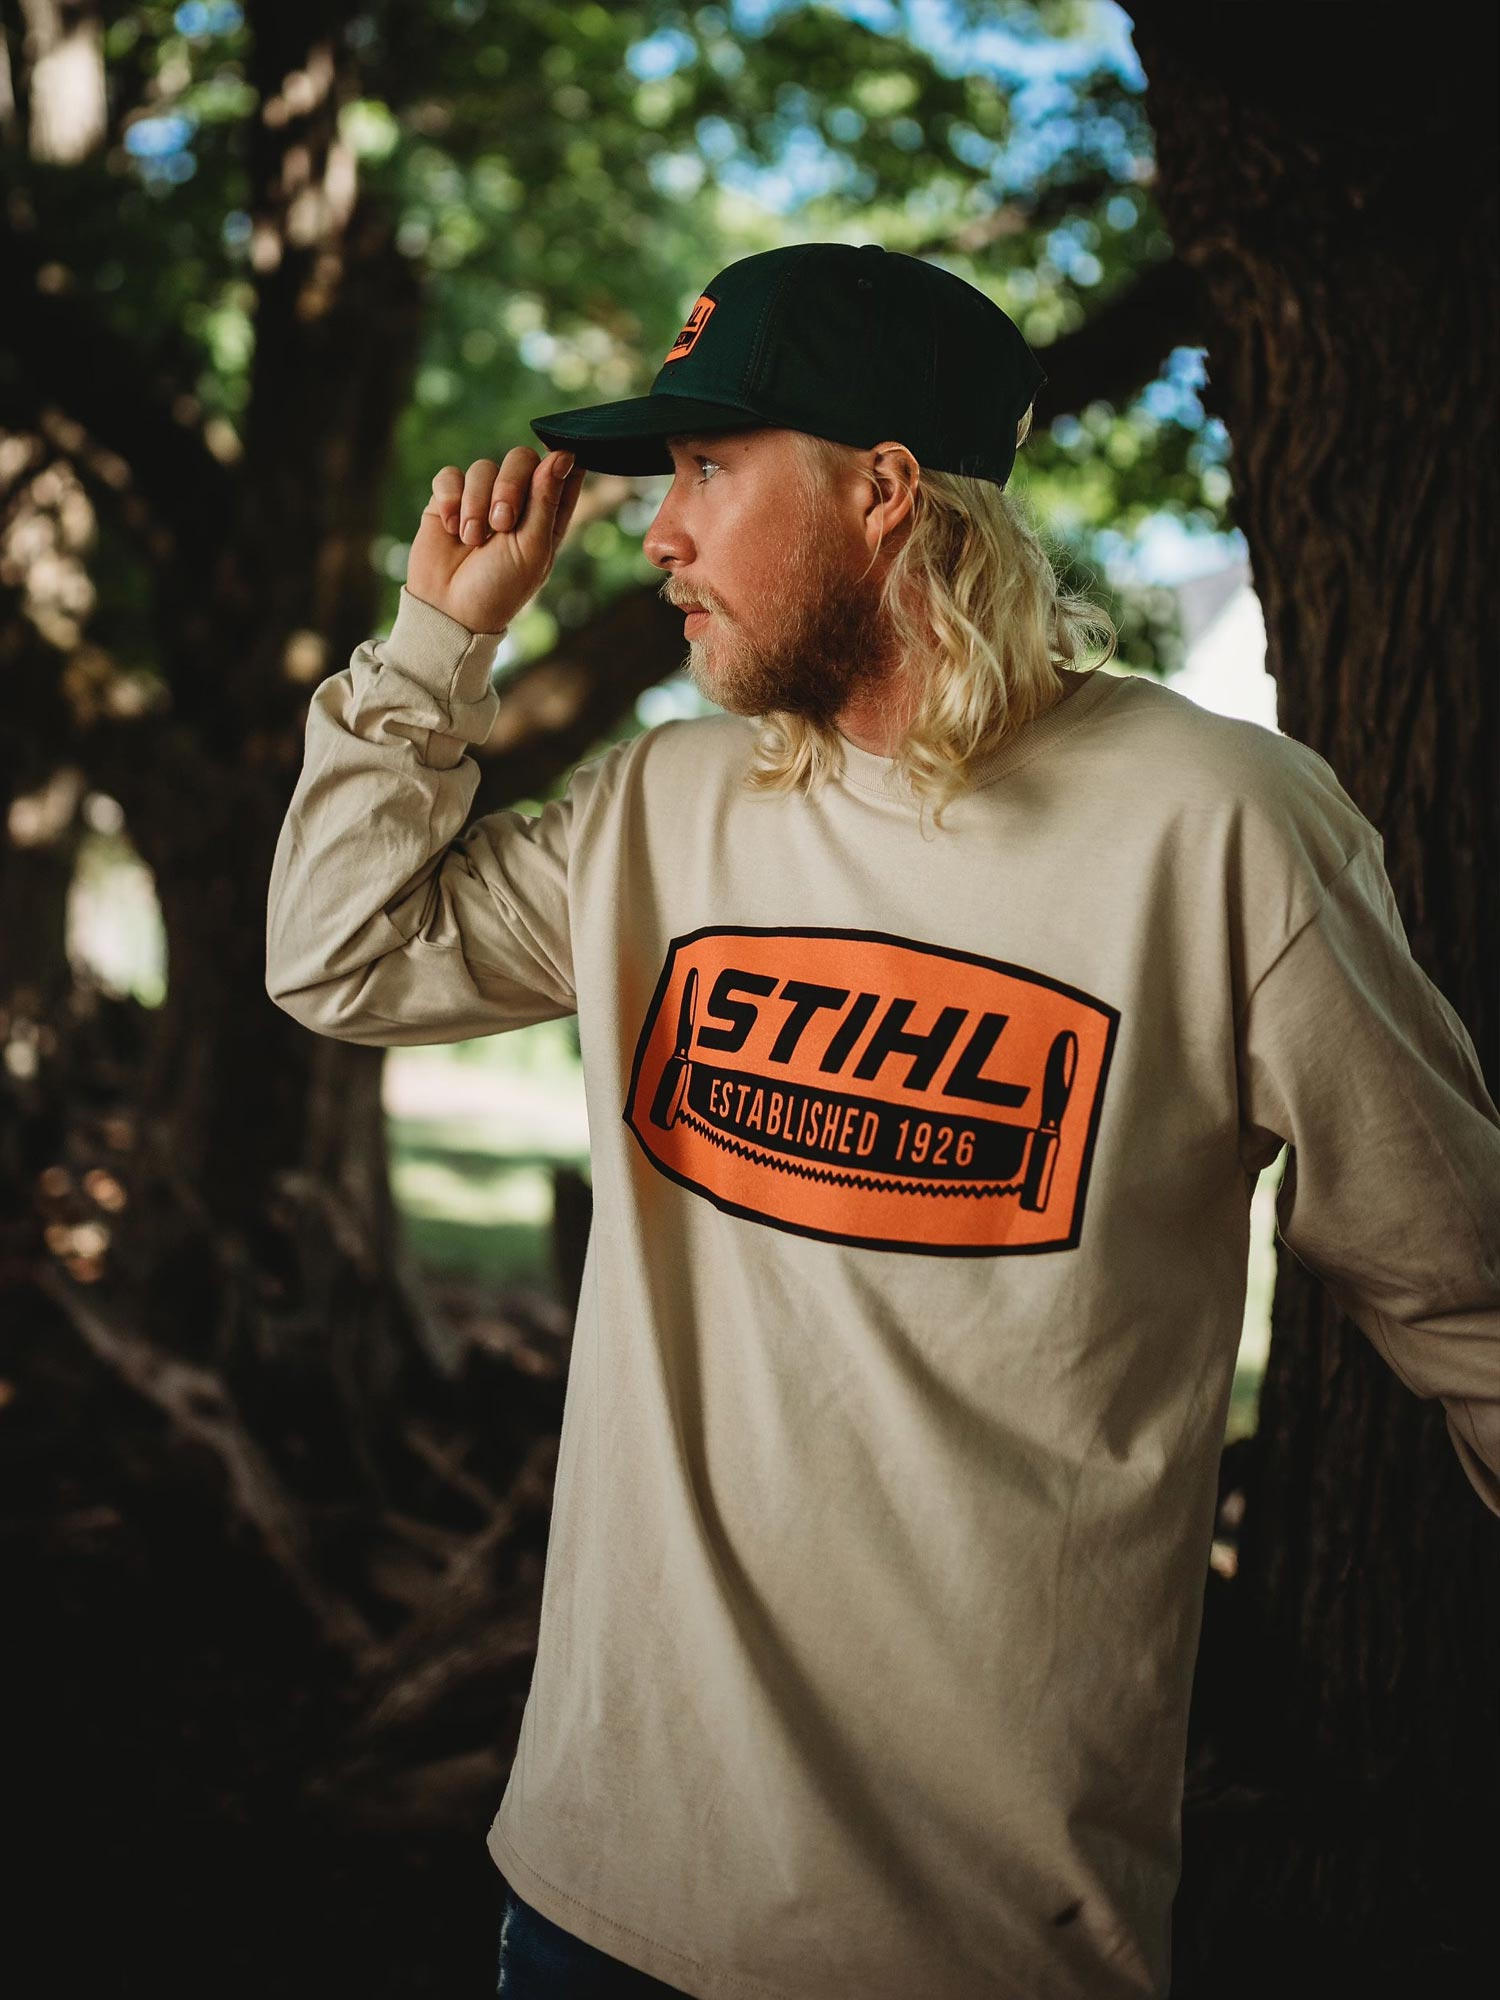 STIHL Establish 1926 Long Sleeve Shirt